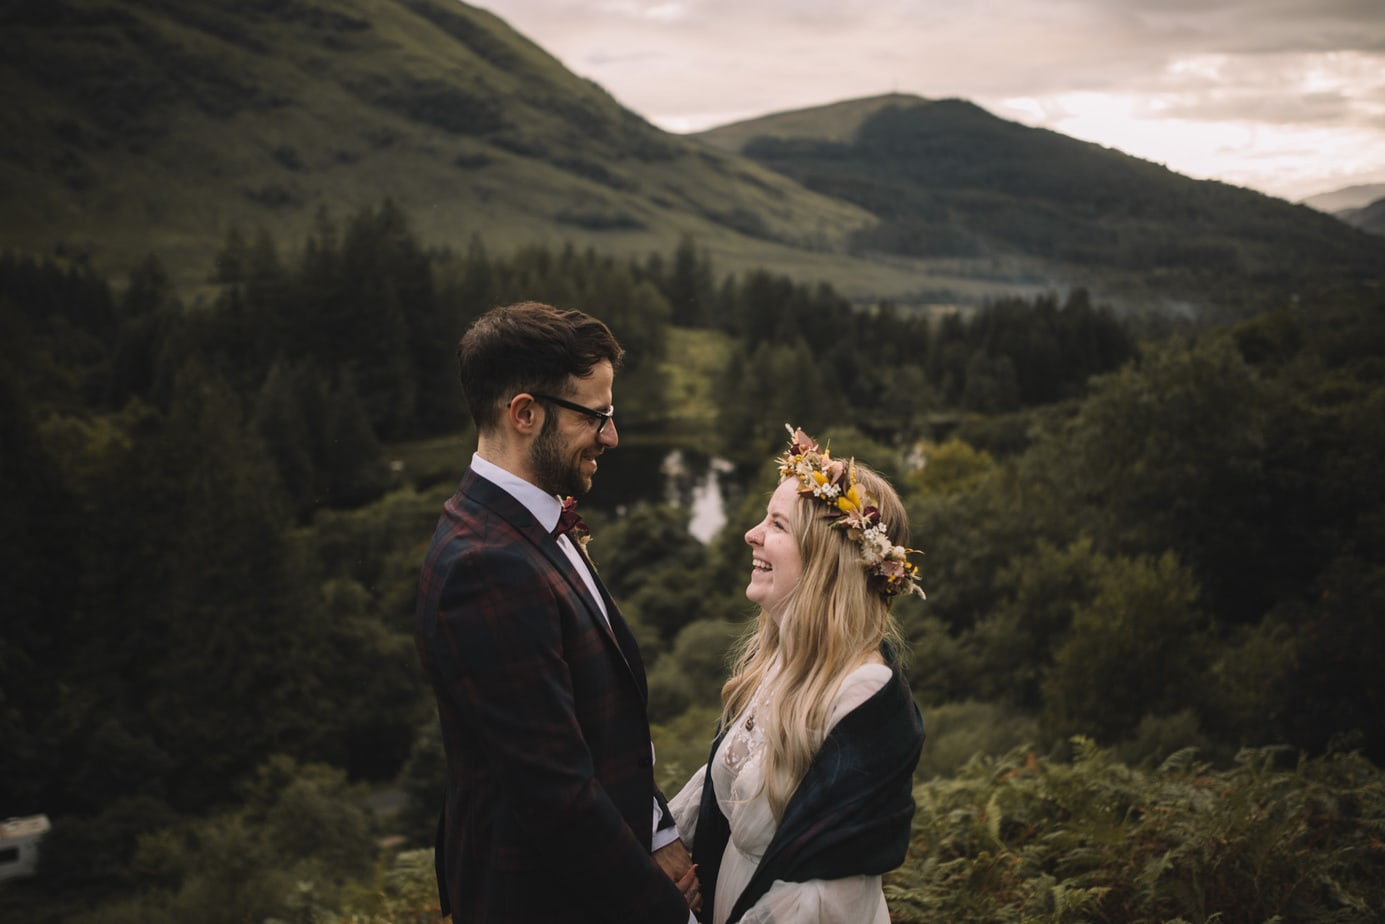 Scotland elopement. Couple laughing together at the site of Hadgrids hut